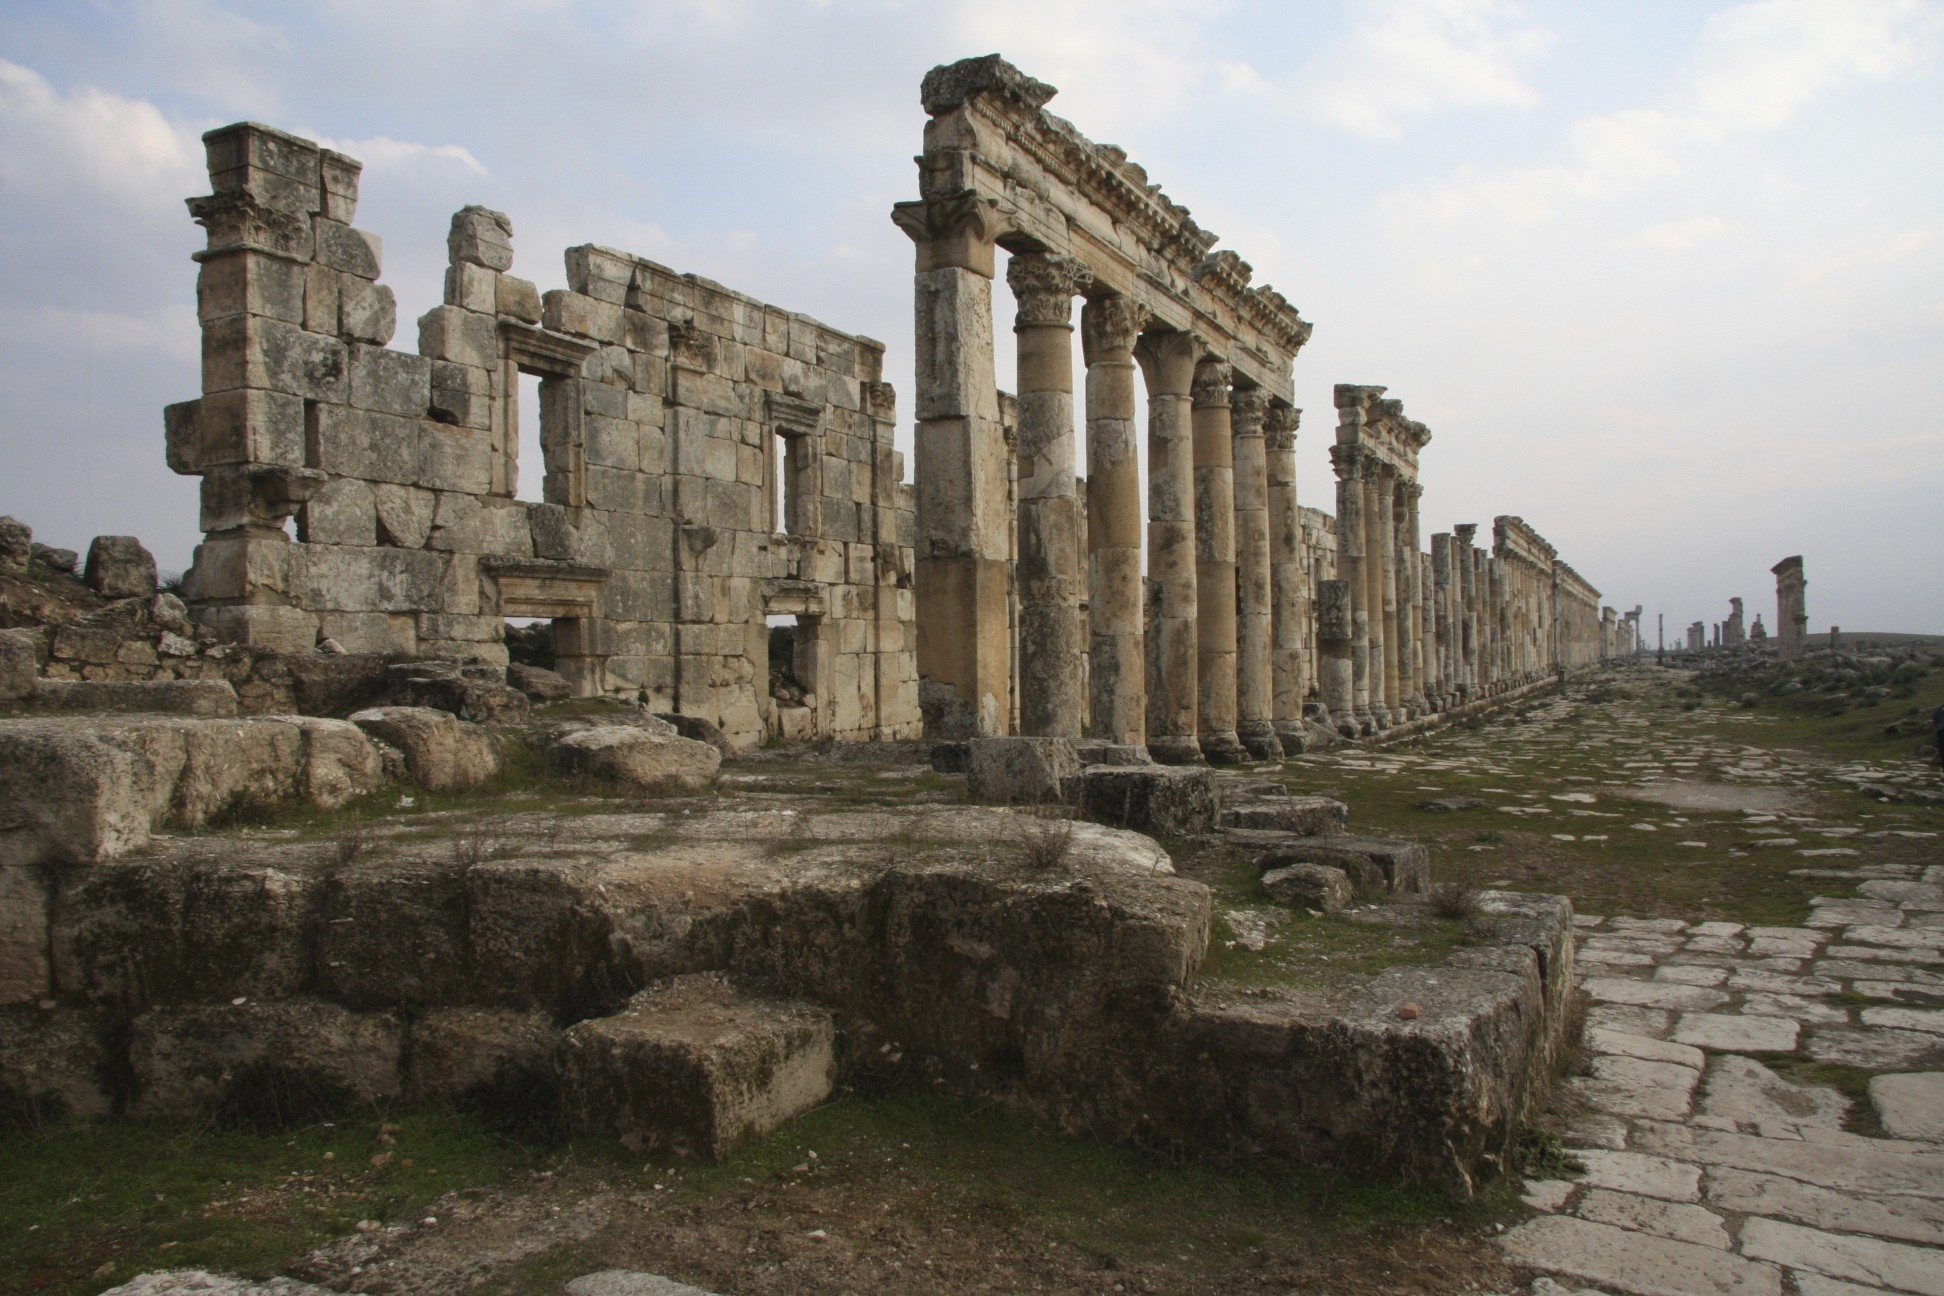 Roman city of Apamea